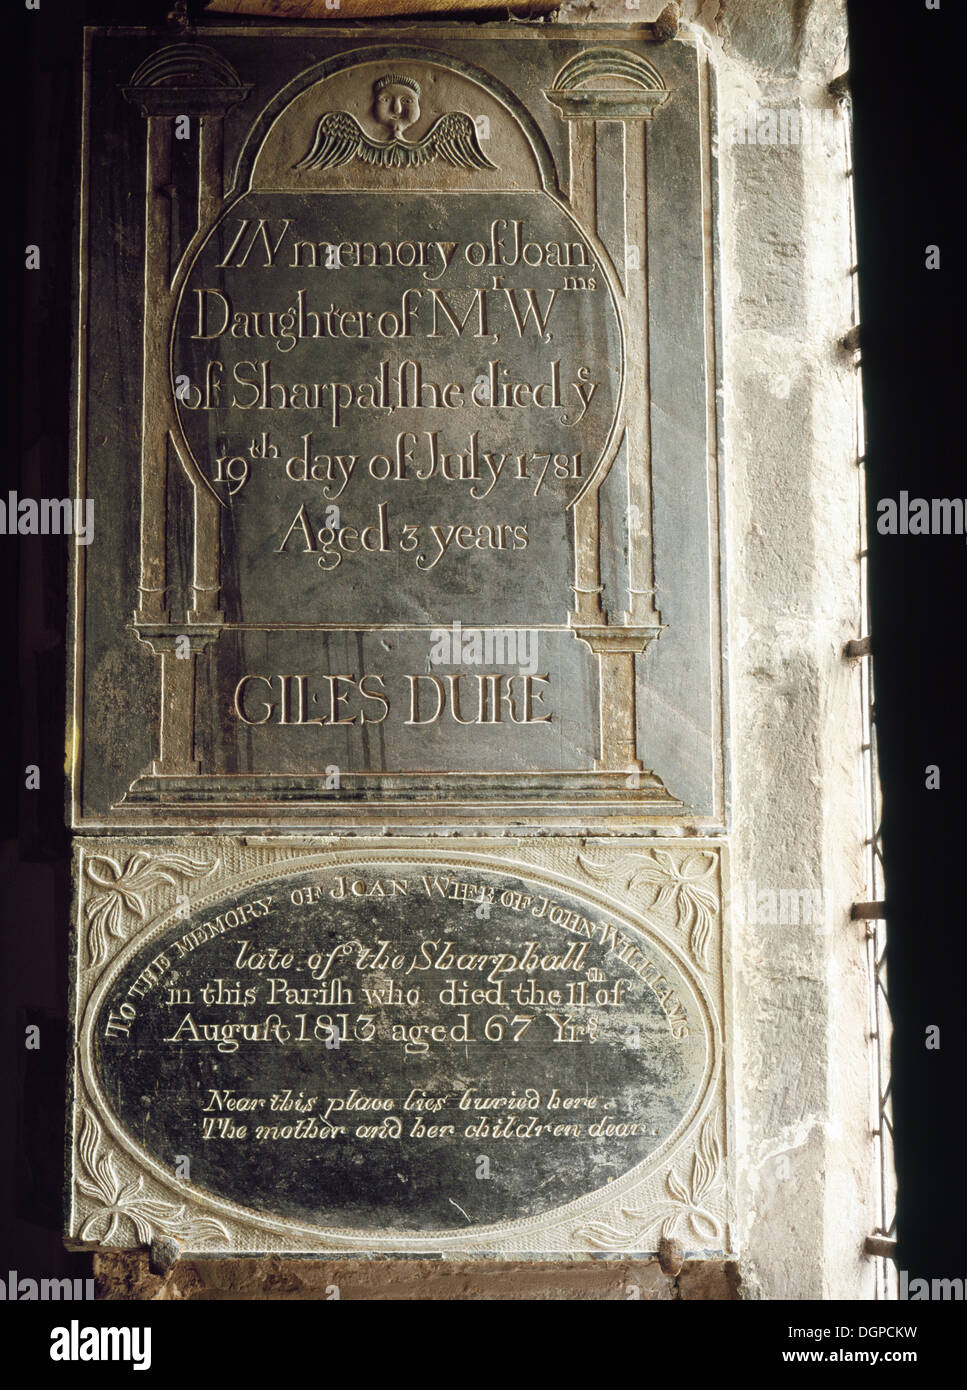 Georgian slate memorial tablets in the nave of St Martin's Church, Cwmyoy, Monmouthshire: Joan daughter of John - Stock Image